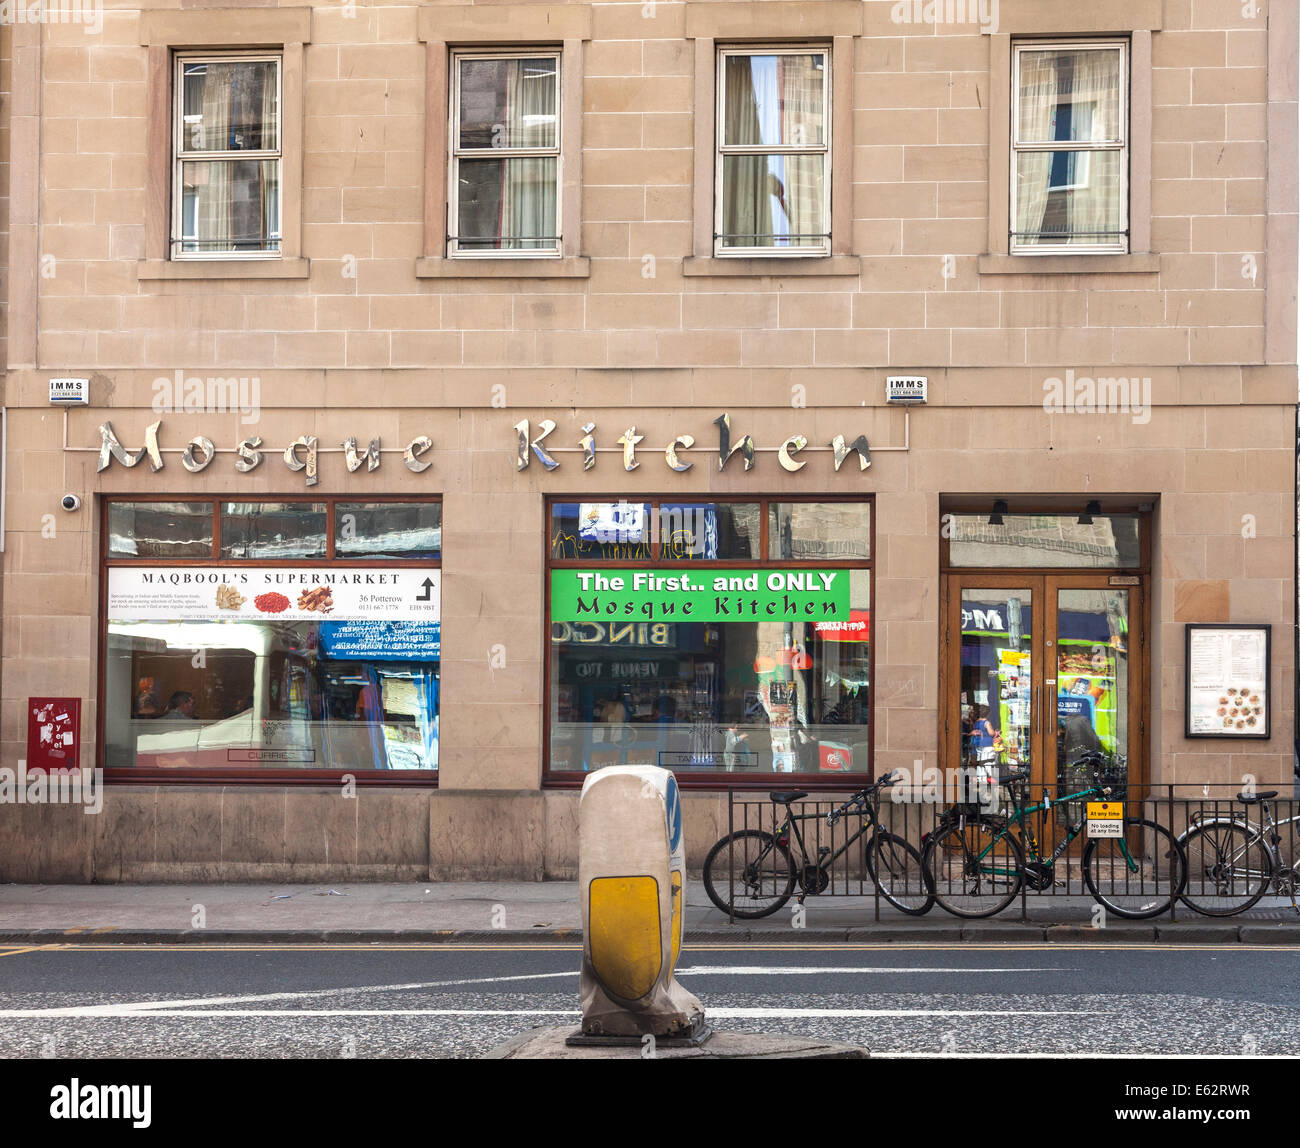 The Mosque Kitchen, a 'Curry in a Hurry' house in Nicholson Square, Edinburgh, opposite Edinburgh Central Mosque. Stock Photo